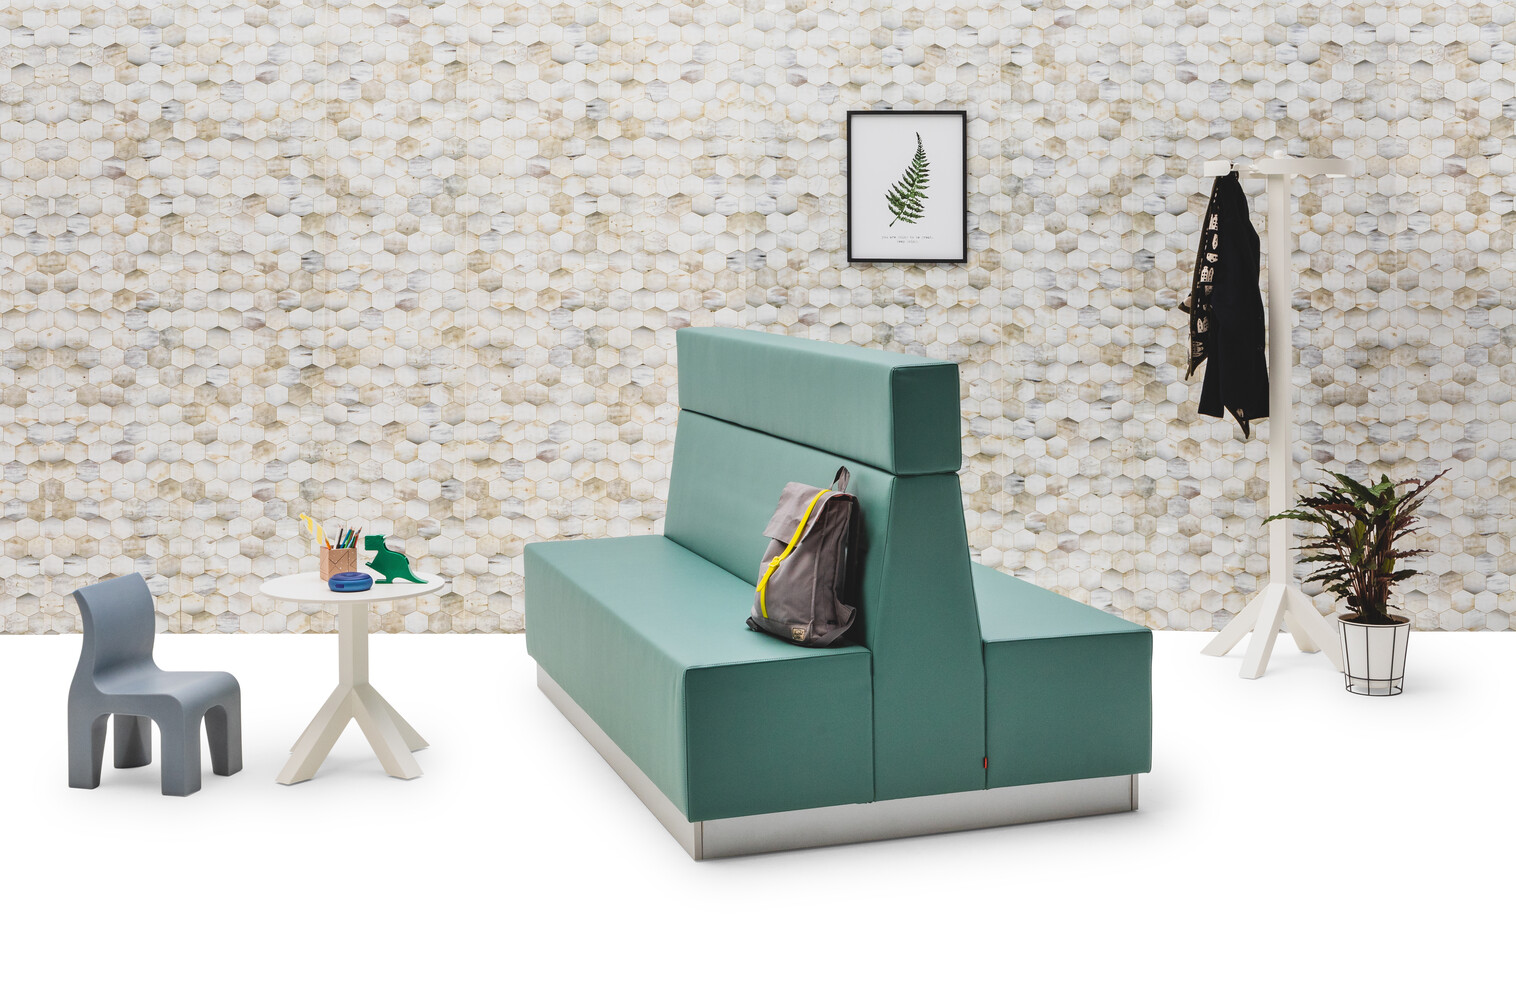 Gispen JUNA Double high trainbench upholstered in green with grey Bronto and white Dukdalf side table and coat rack in front of beehive backpanel front right view